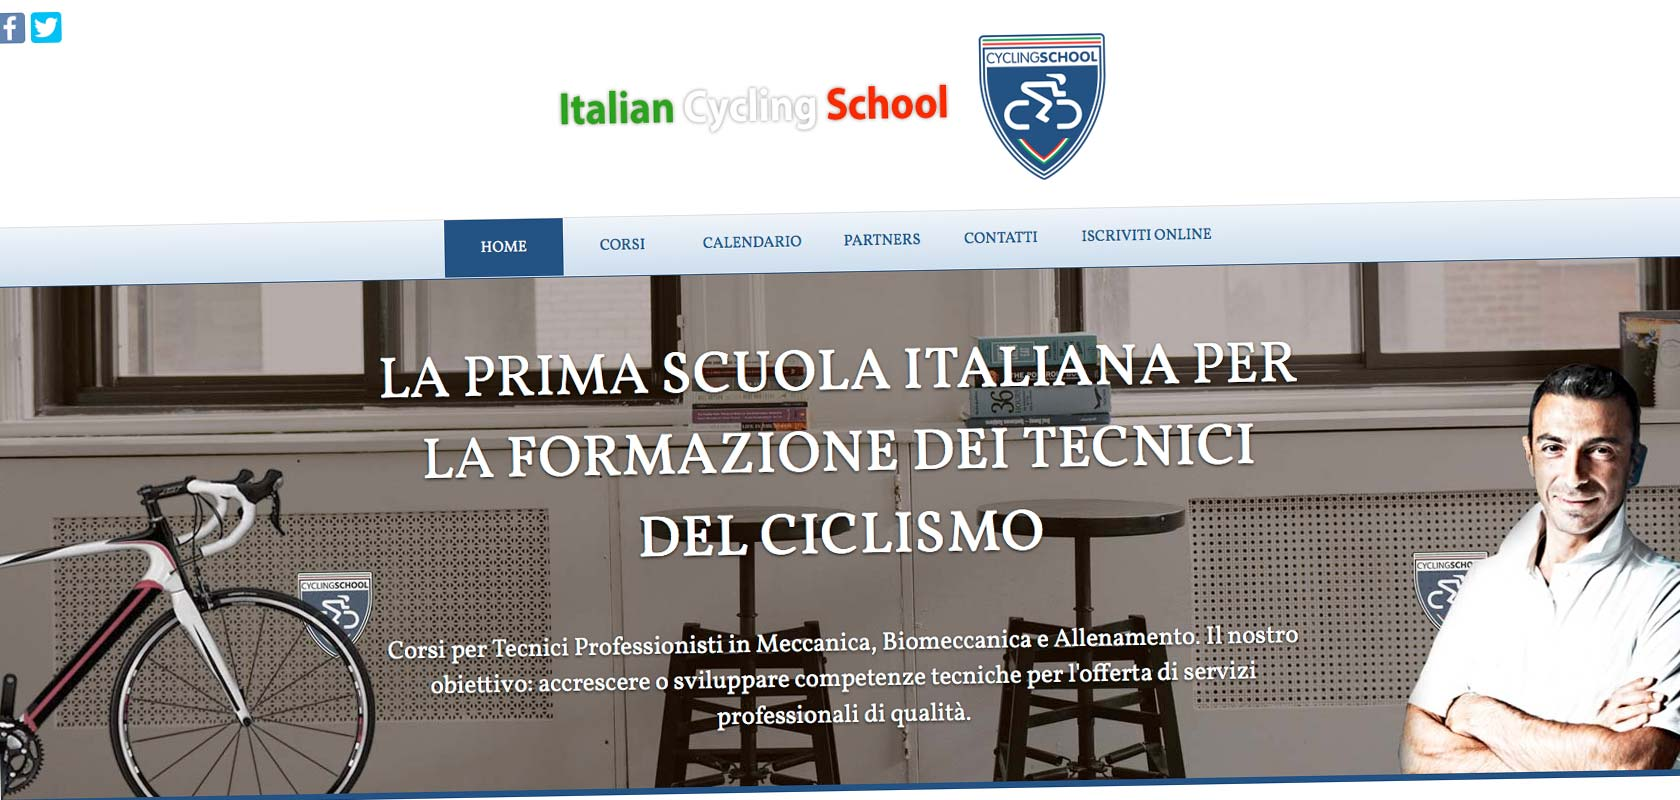 Italian Cycling School - TidiWeb